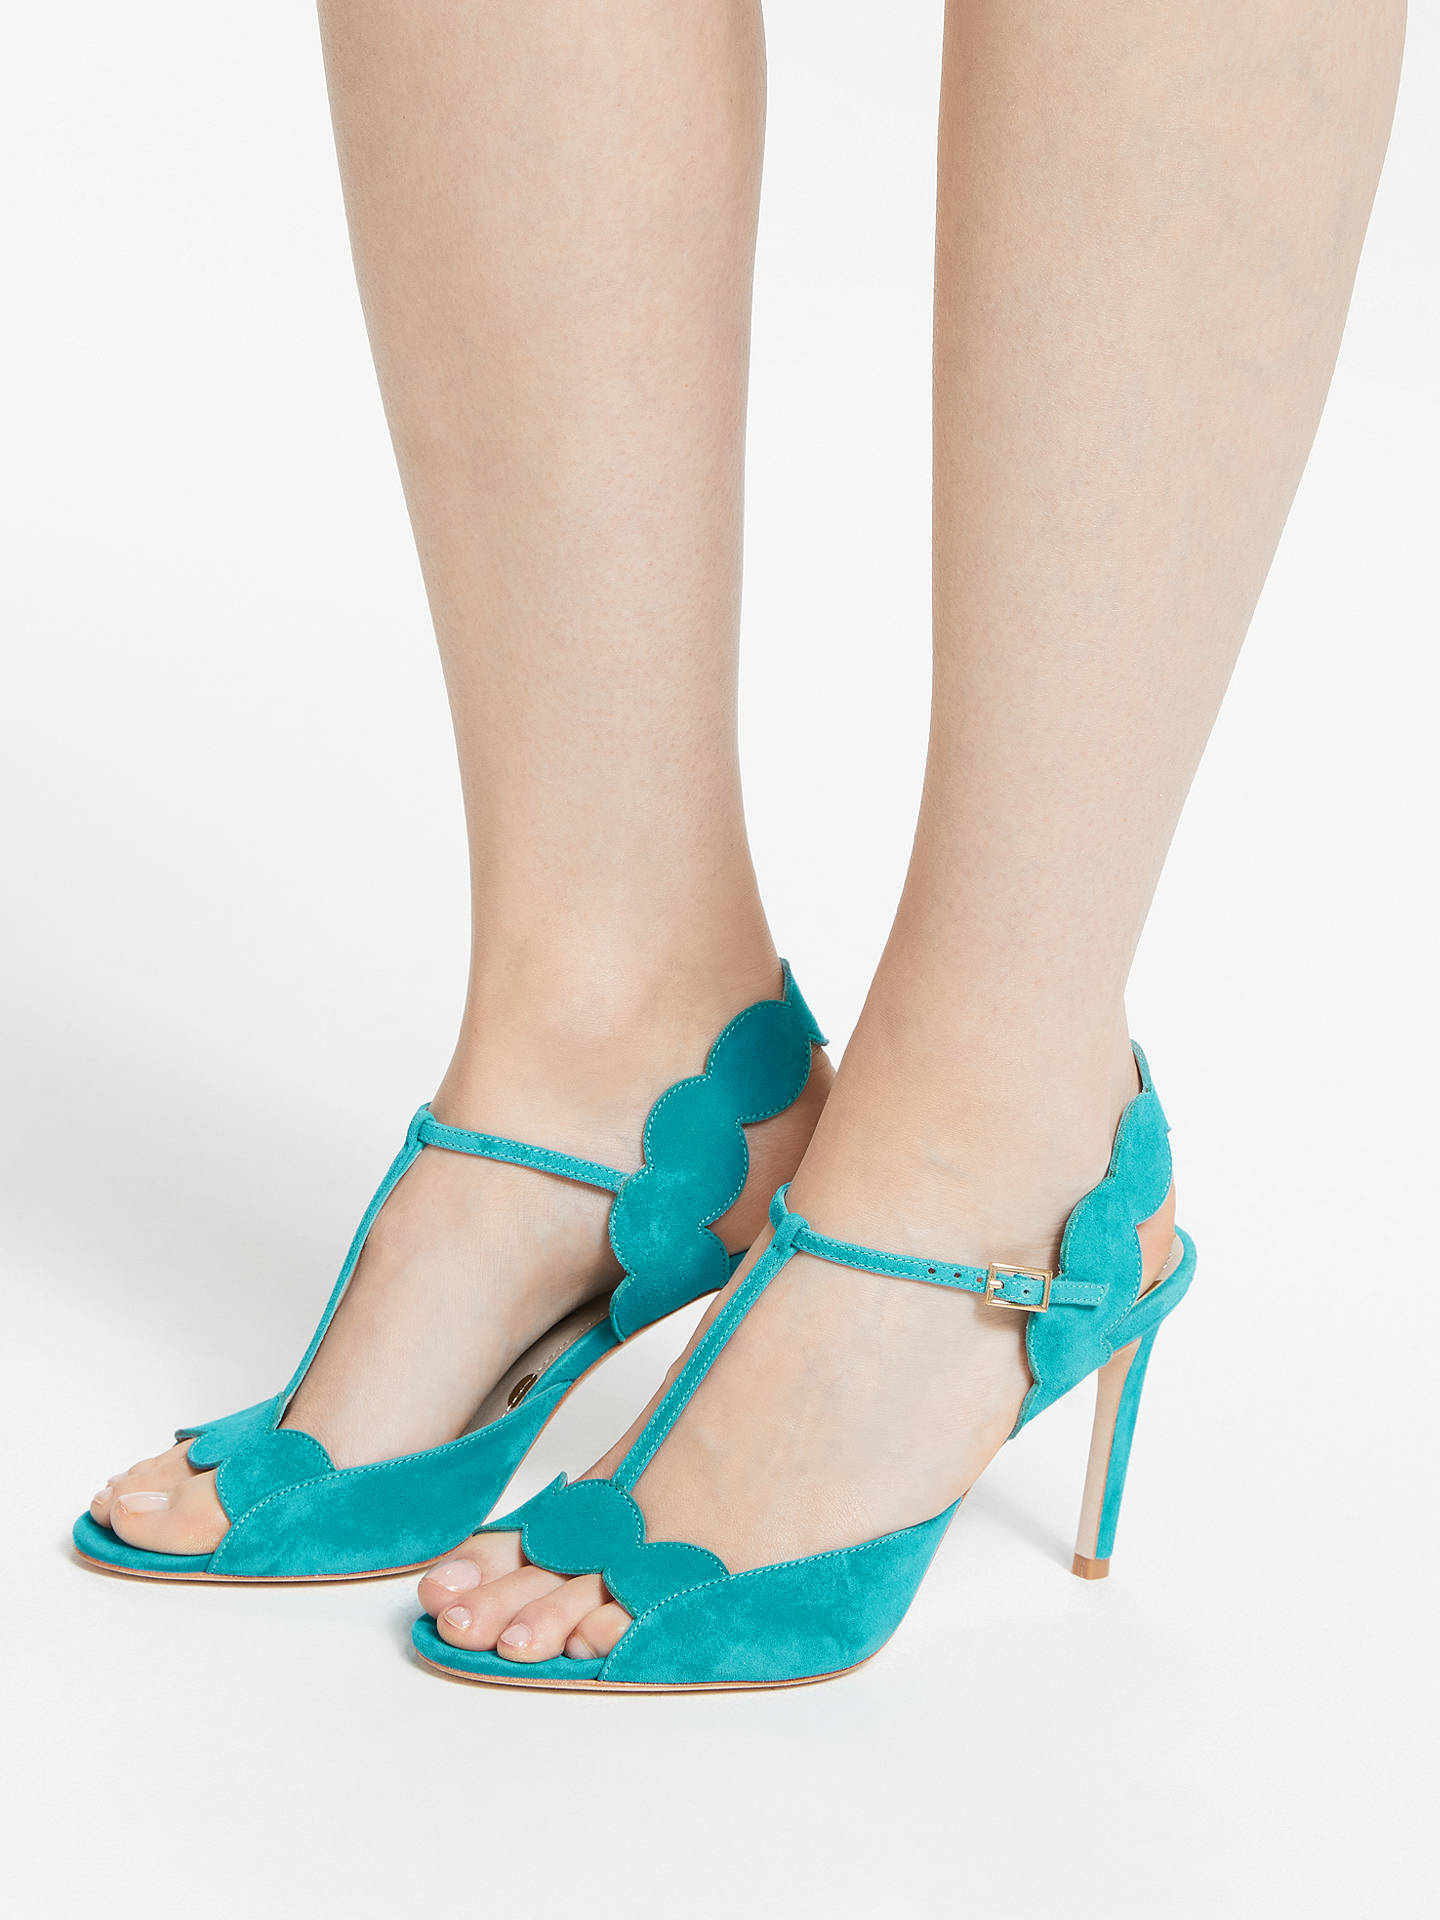 4b8131ee39cc Boden Cecile T-Bar Heeled Sandals at John Lewis   Partners